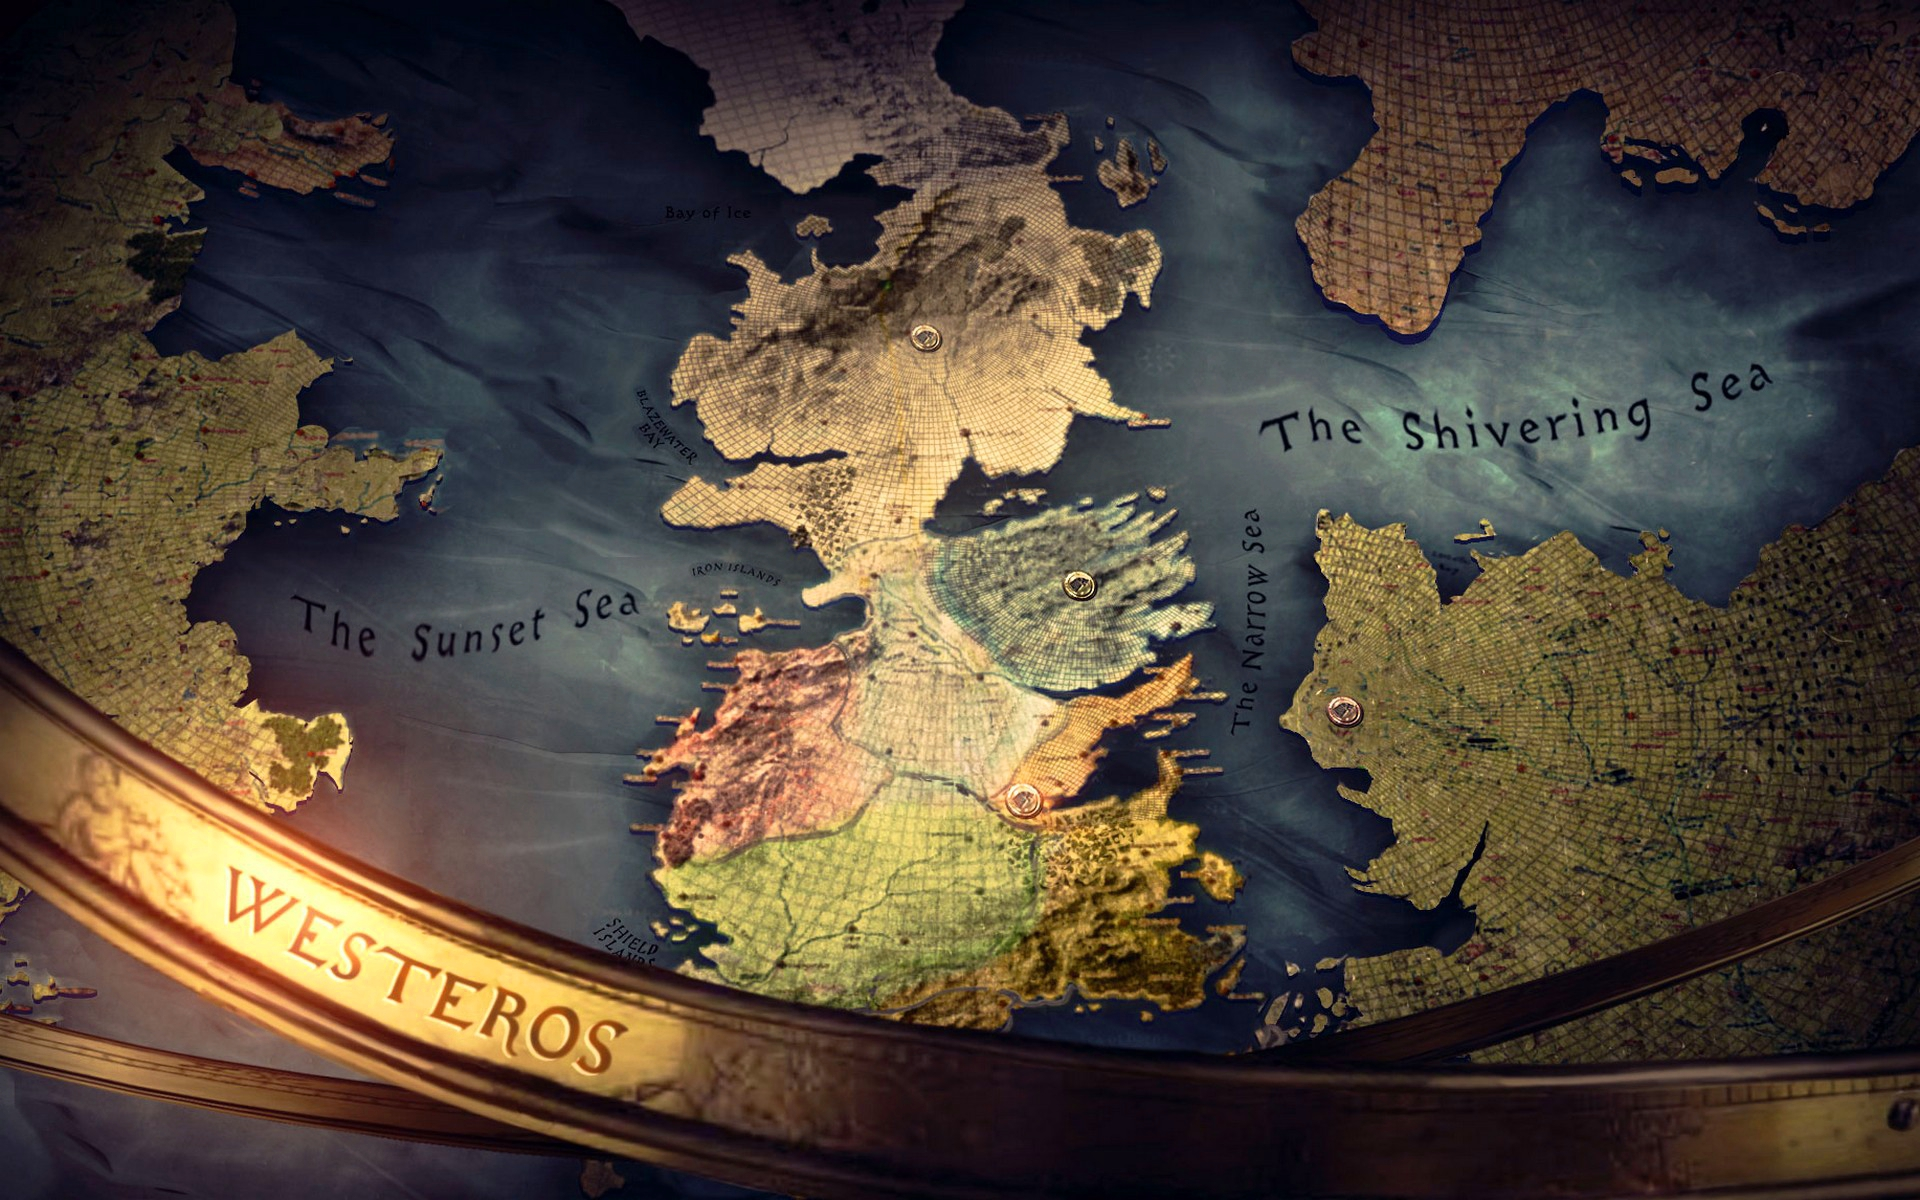 Home · zjg95/gotdb Wiki · GitHub Game Of Thrones Maps Wiki on revenge wiki map, firefly wiki map, game of thrones arya,